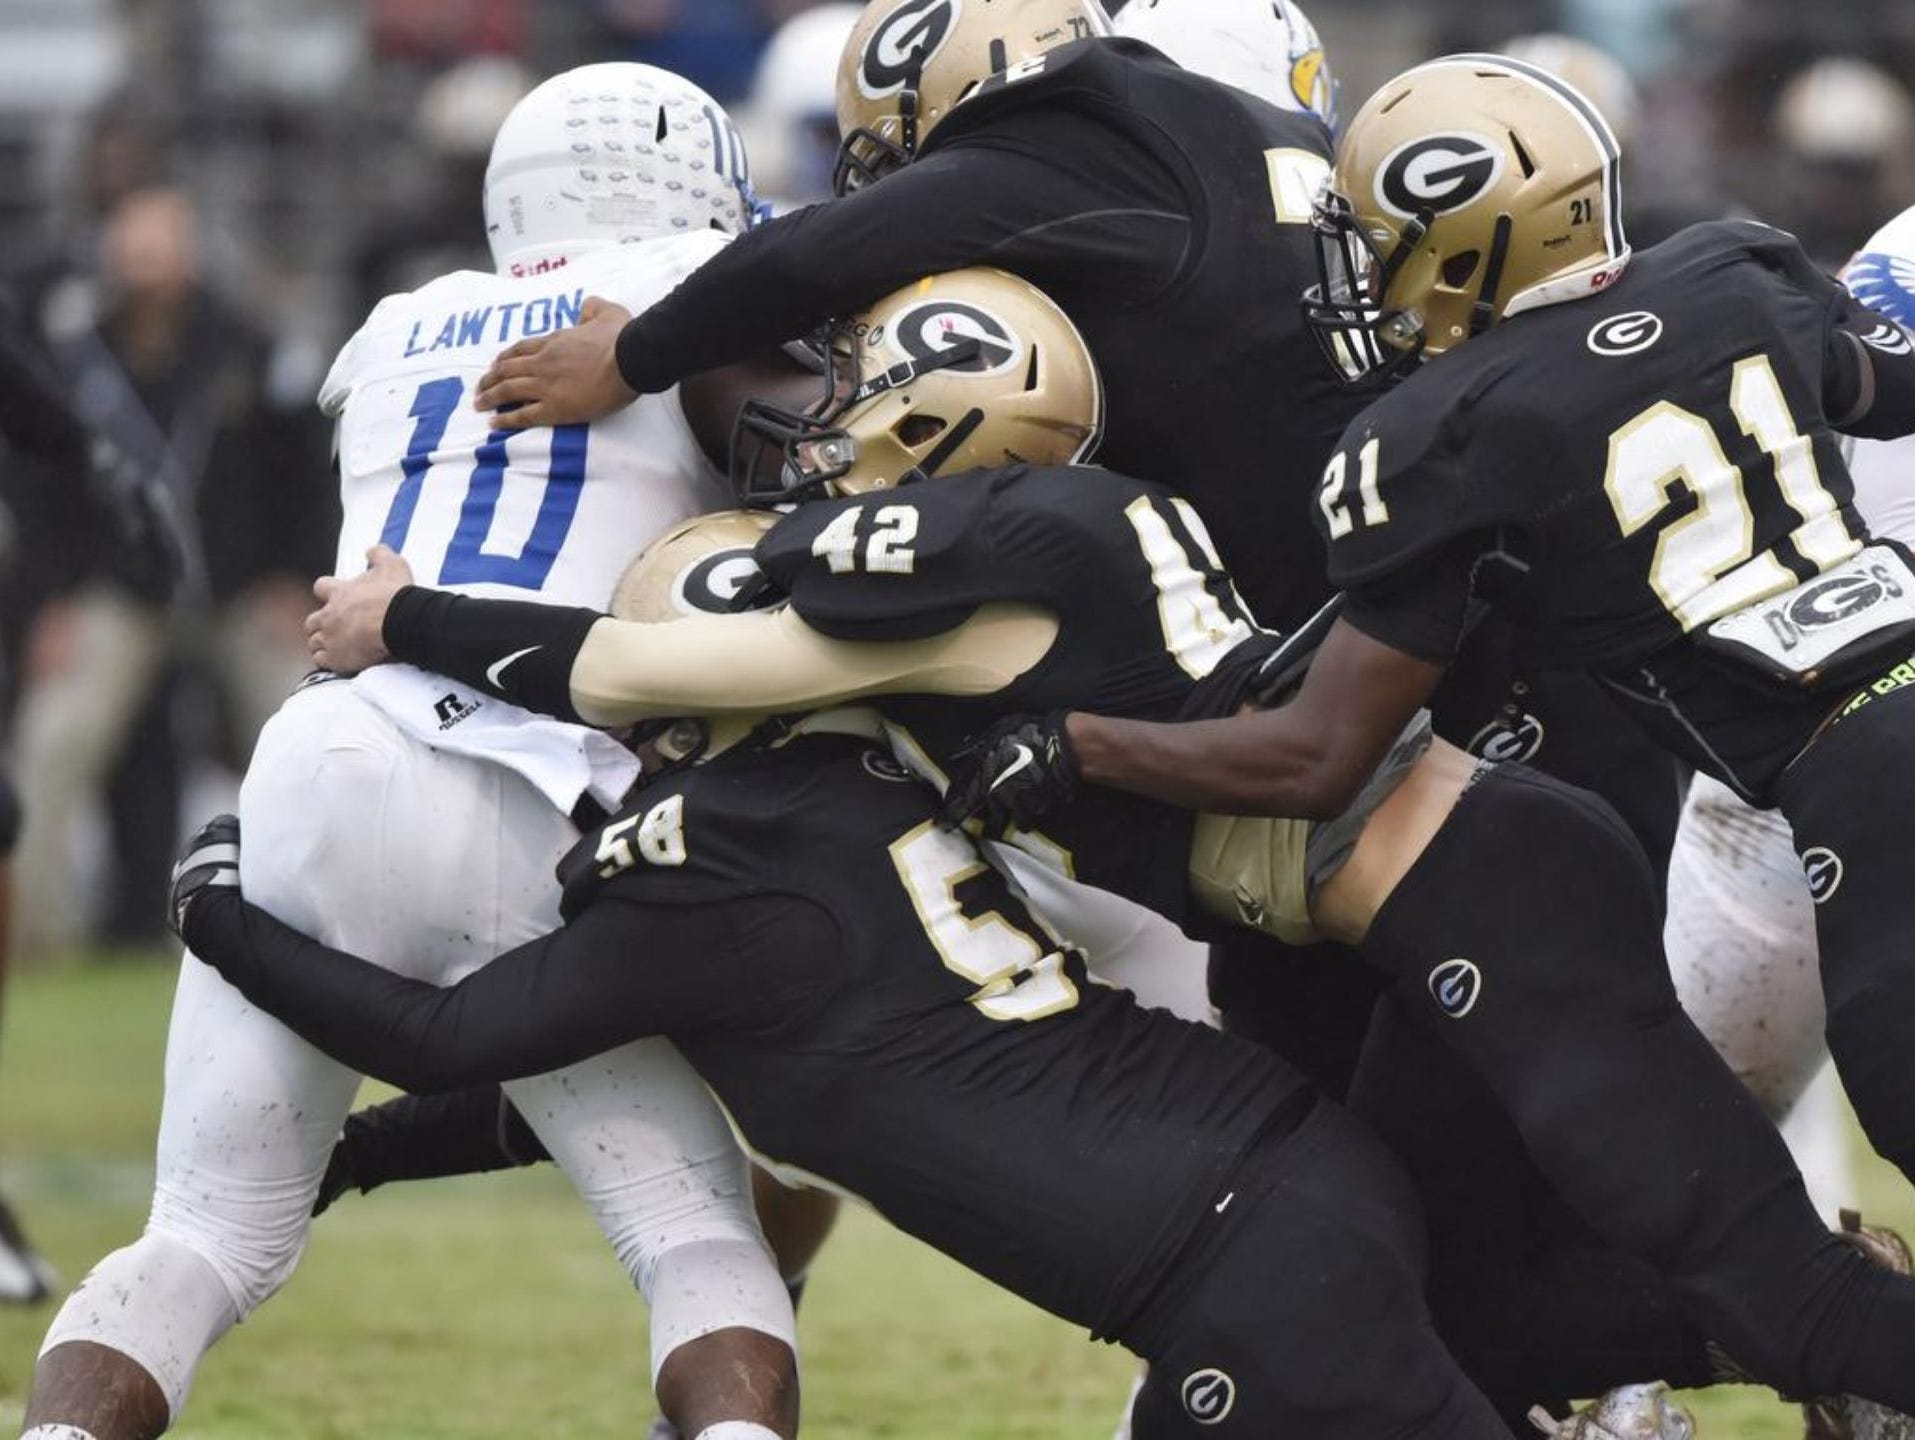 Korey Styles (58), Brodie Wright (42), Jordan Hawthorne (72) and Isaiah Long (21) have helped a Greer defense that has limited opponents to 11.7 points per game.